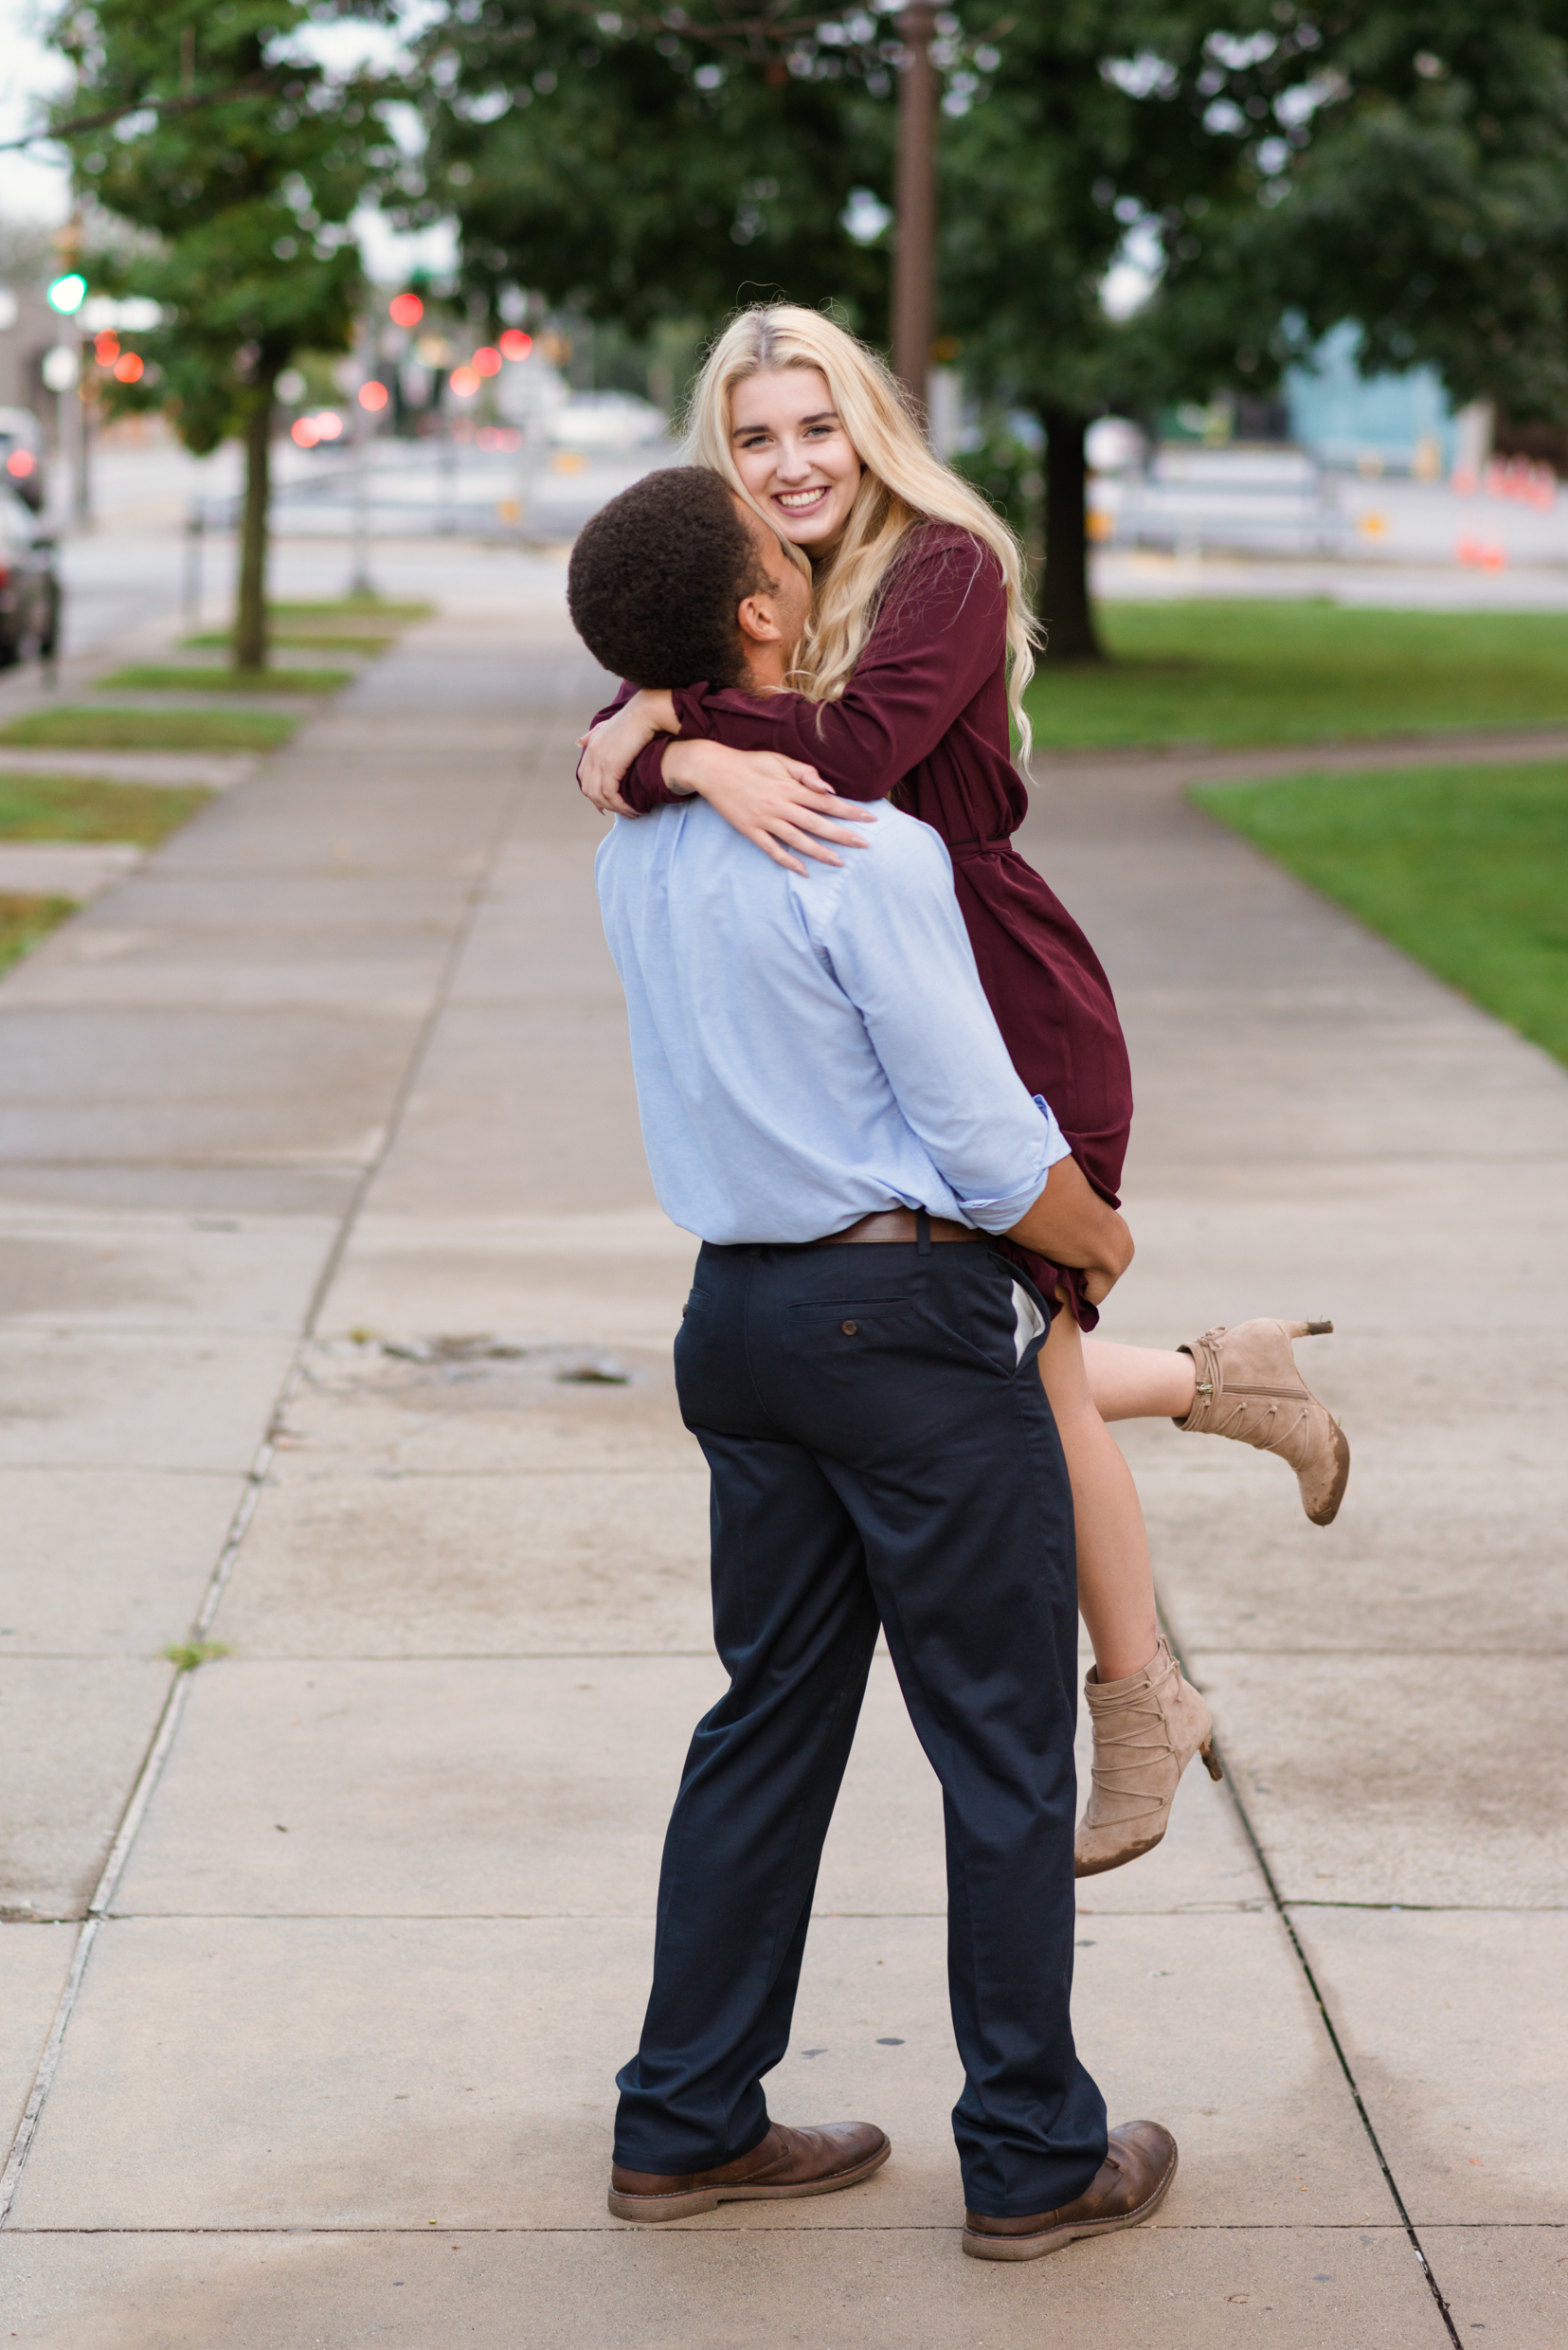 Fun Engagement-Couple-Photoshoot